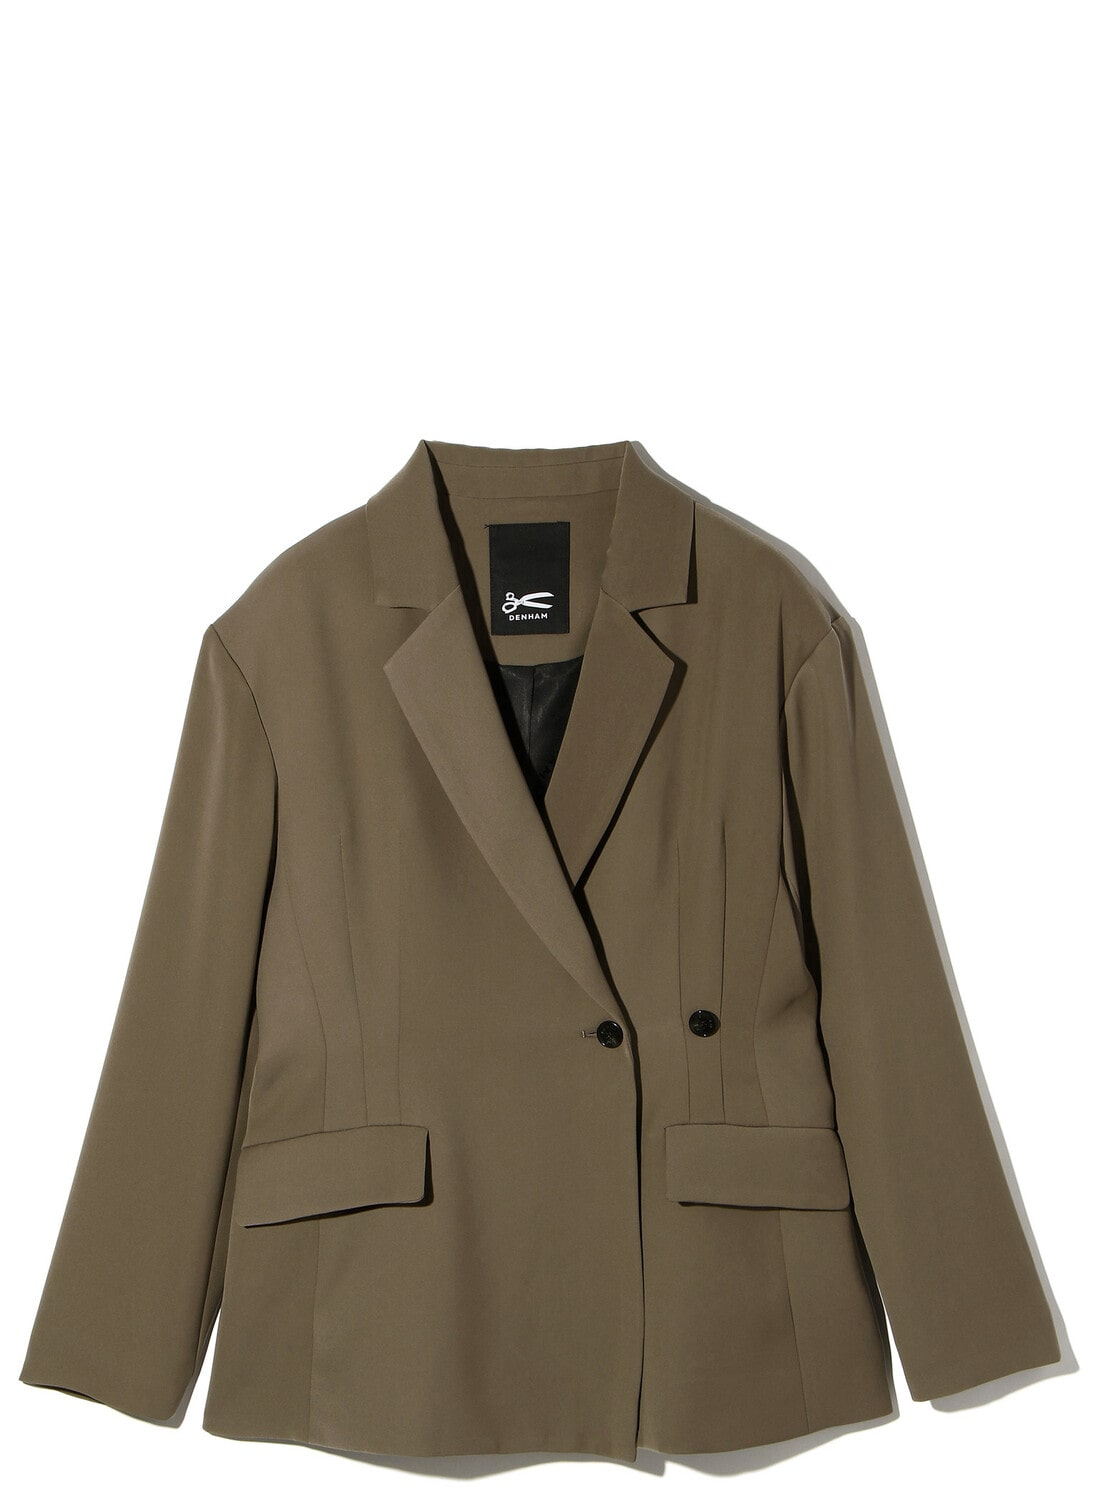 FORNAX TAILORED JACKET